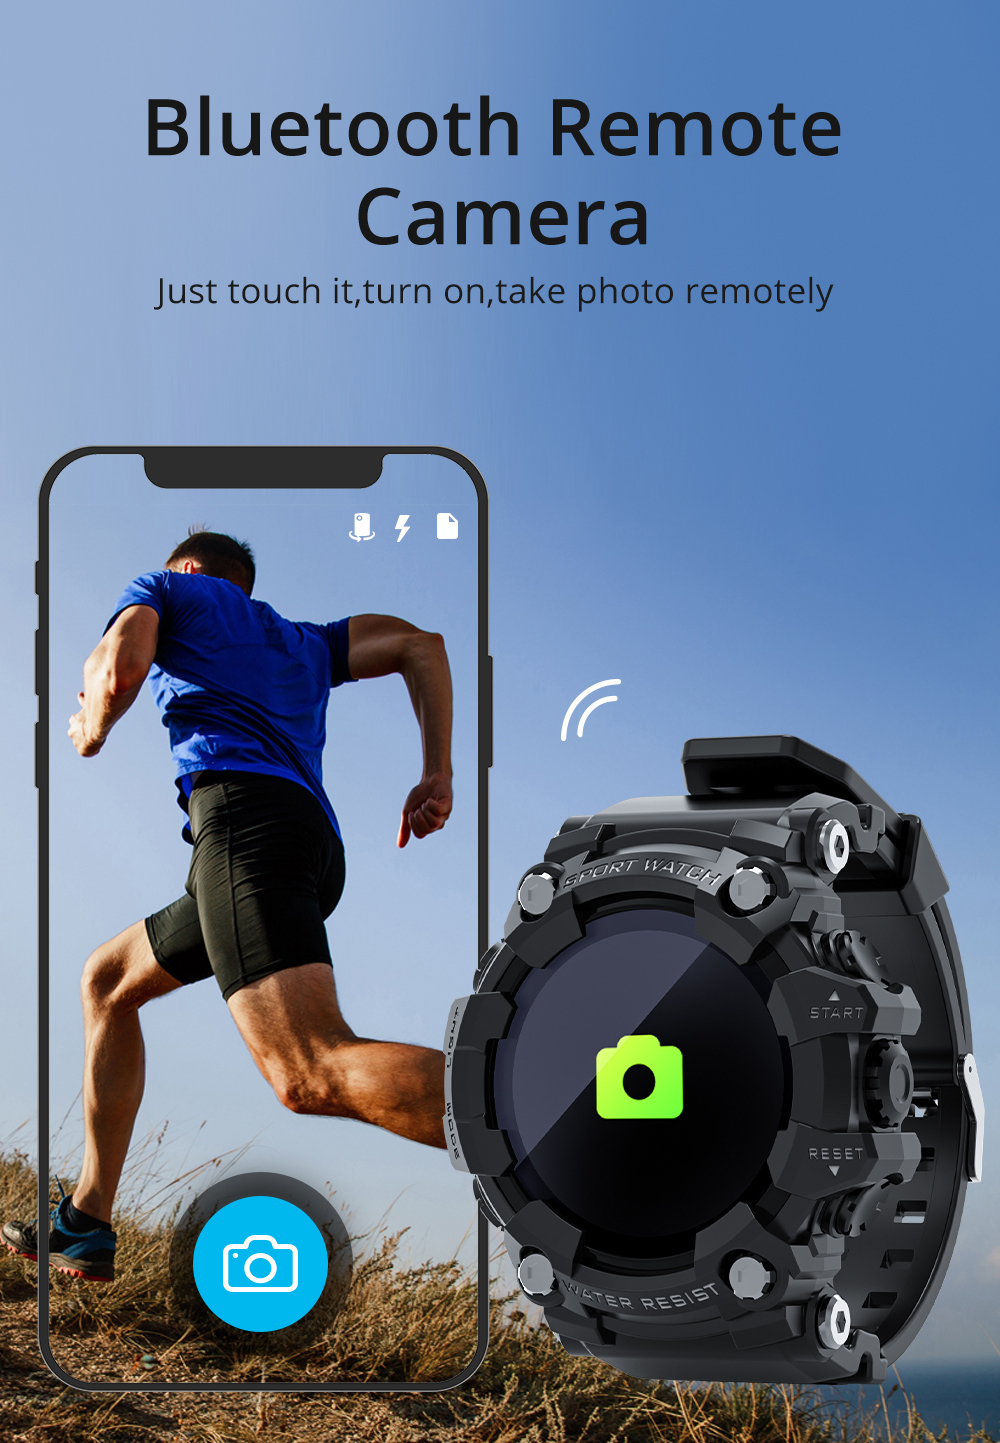 Hcd998954cf284a8e9c57de589b434b665 LOKMAT ATTACK Full Touch Screen Fitness Tracker Smart Watch Men Heart Rate Monitor Blood Pressure Smartwatch For Android iOS